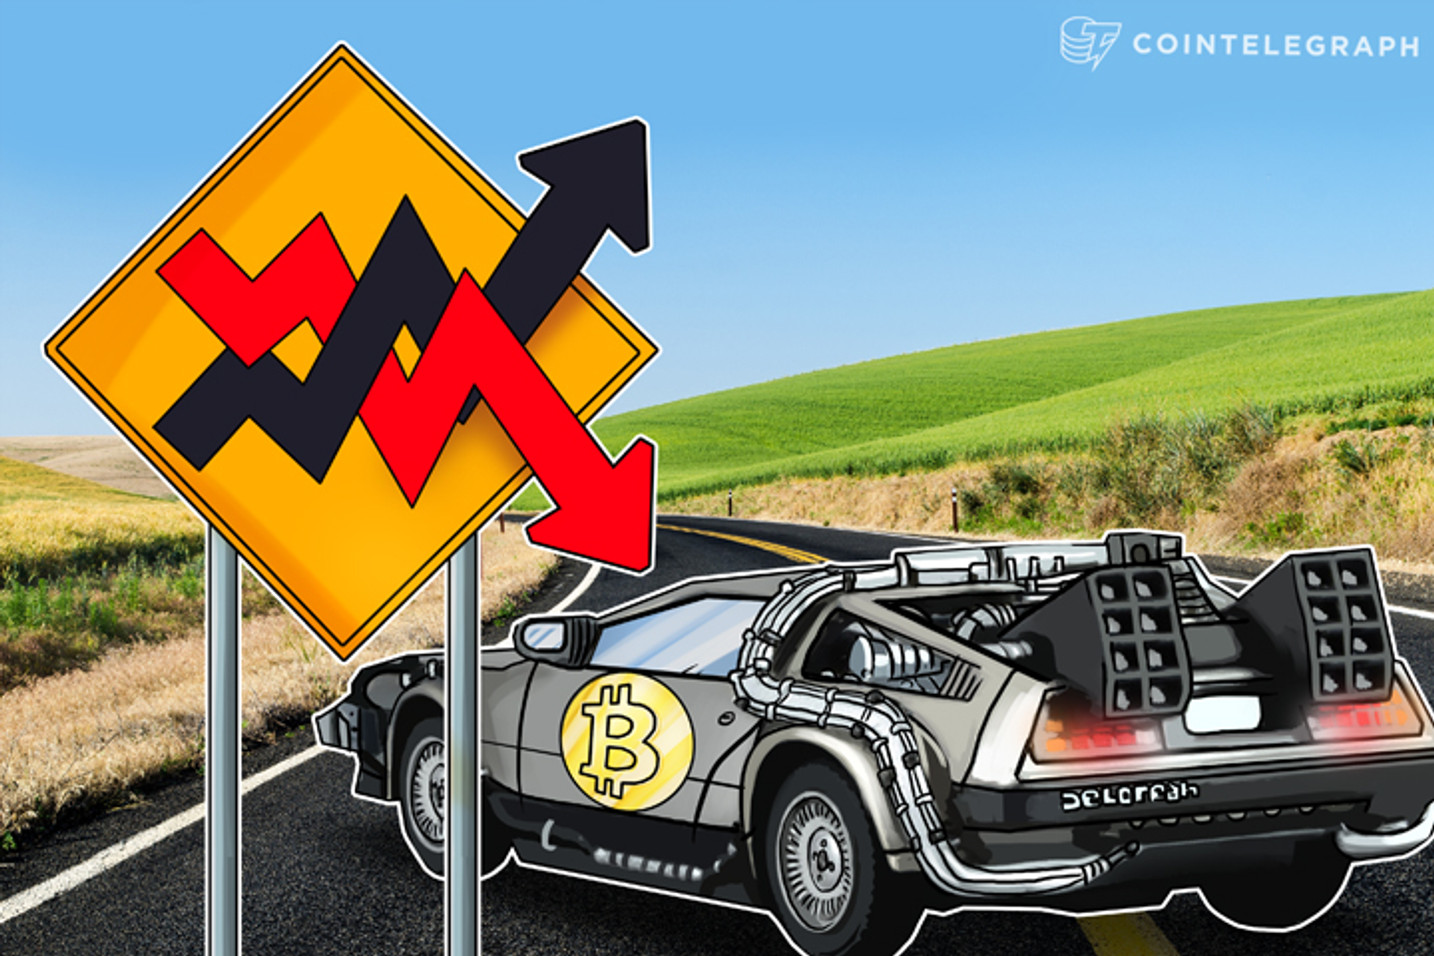 Study: Bitcoin's Volatility to Level With Fiat by 2019